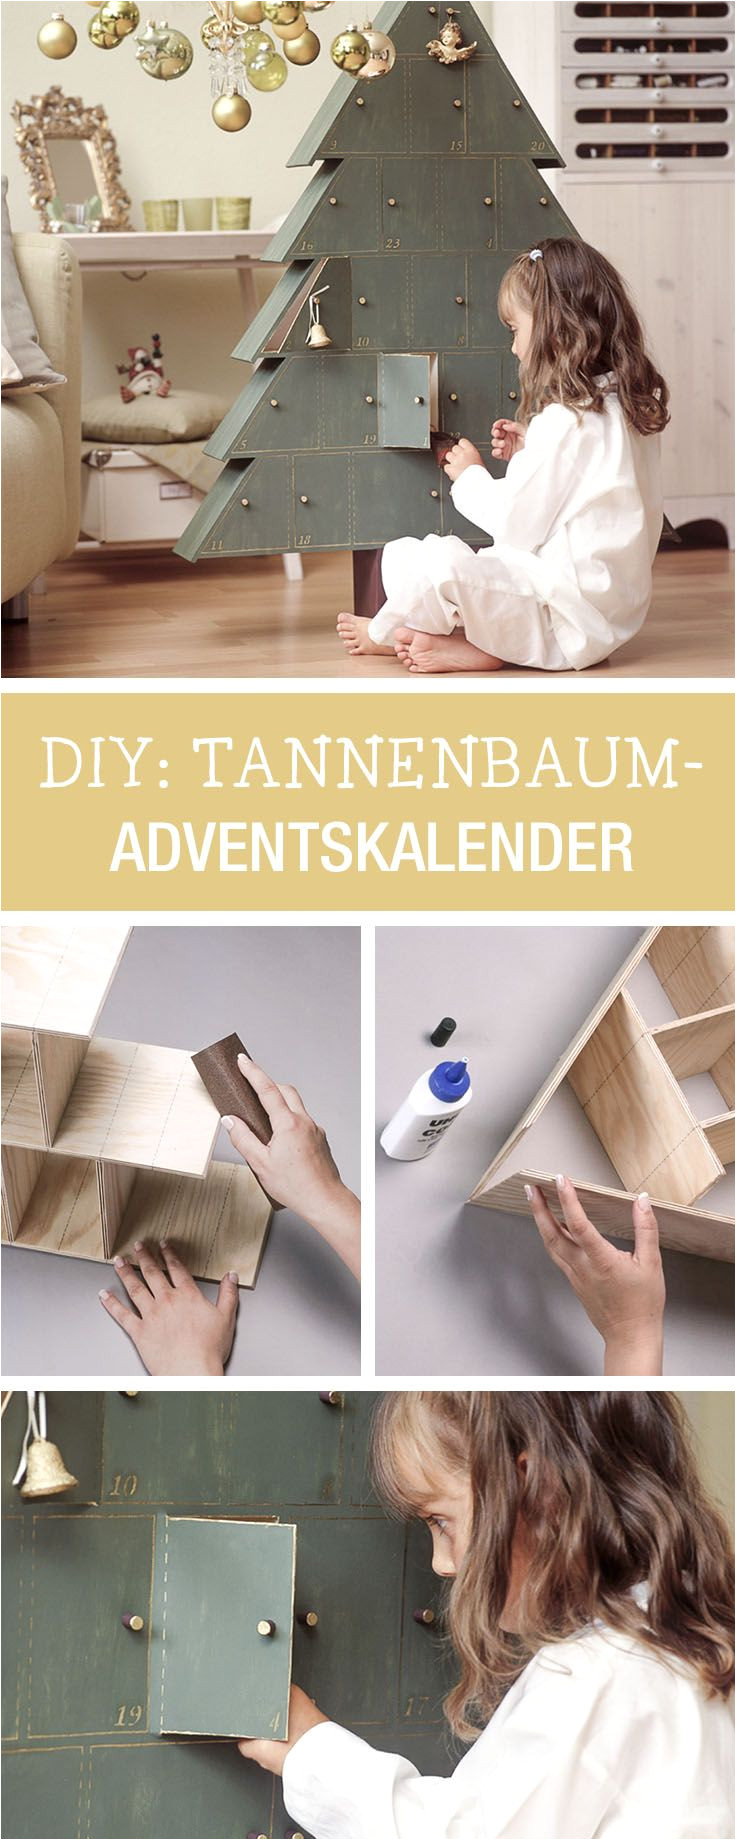 adventskalender aus holz selberbauen wooden advents calendar in shape of a tree via dawanda